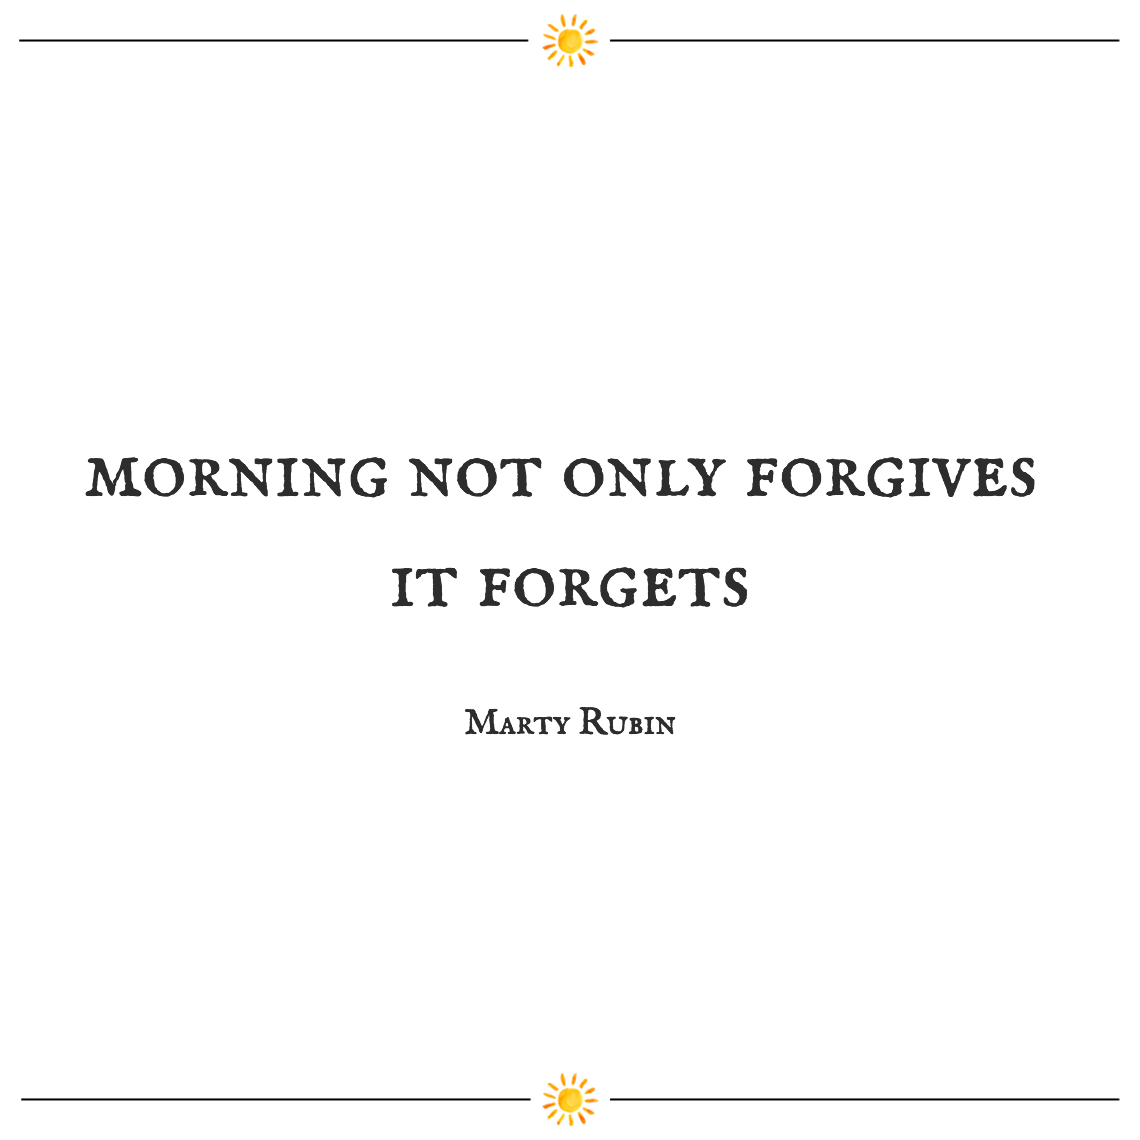 Morning not only forgives it for s marty rubin good morning quotes